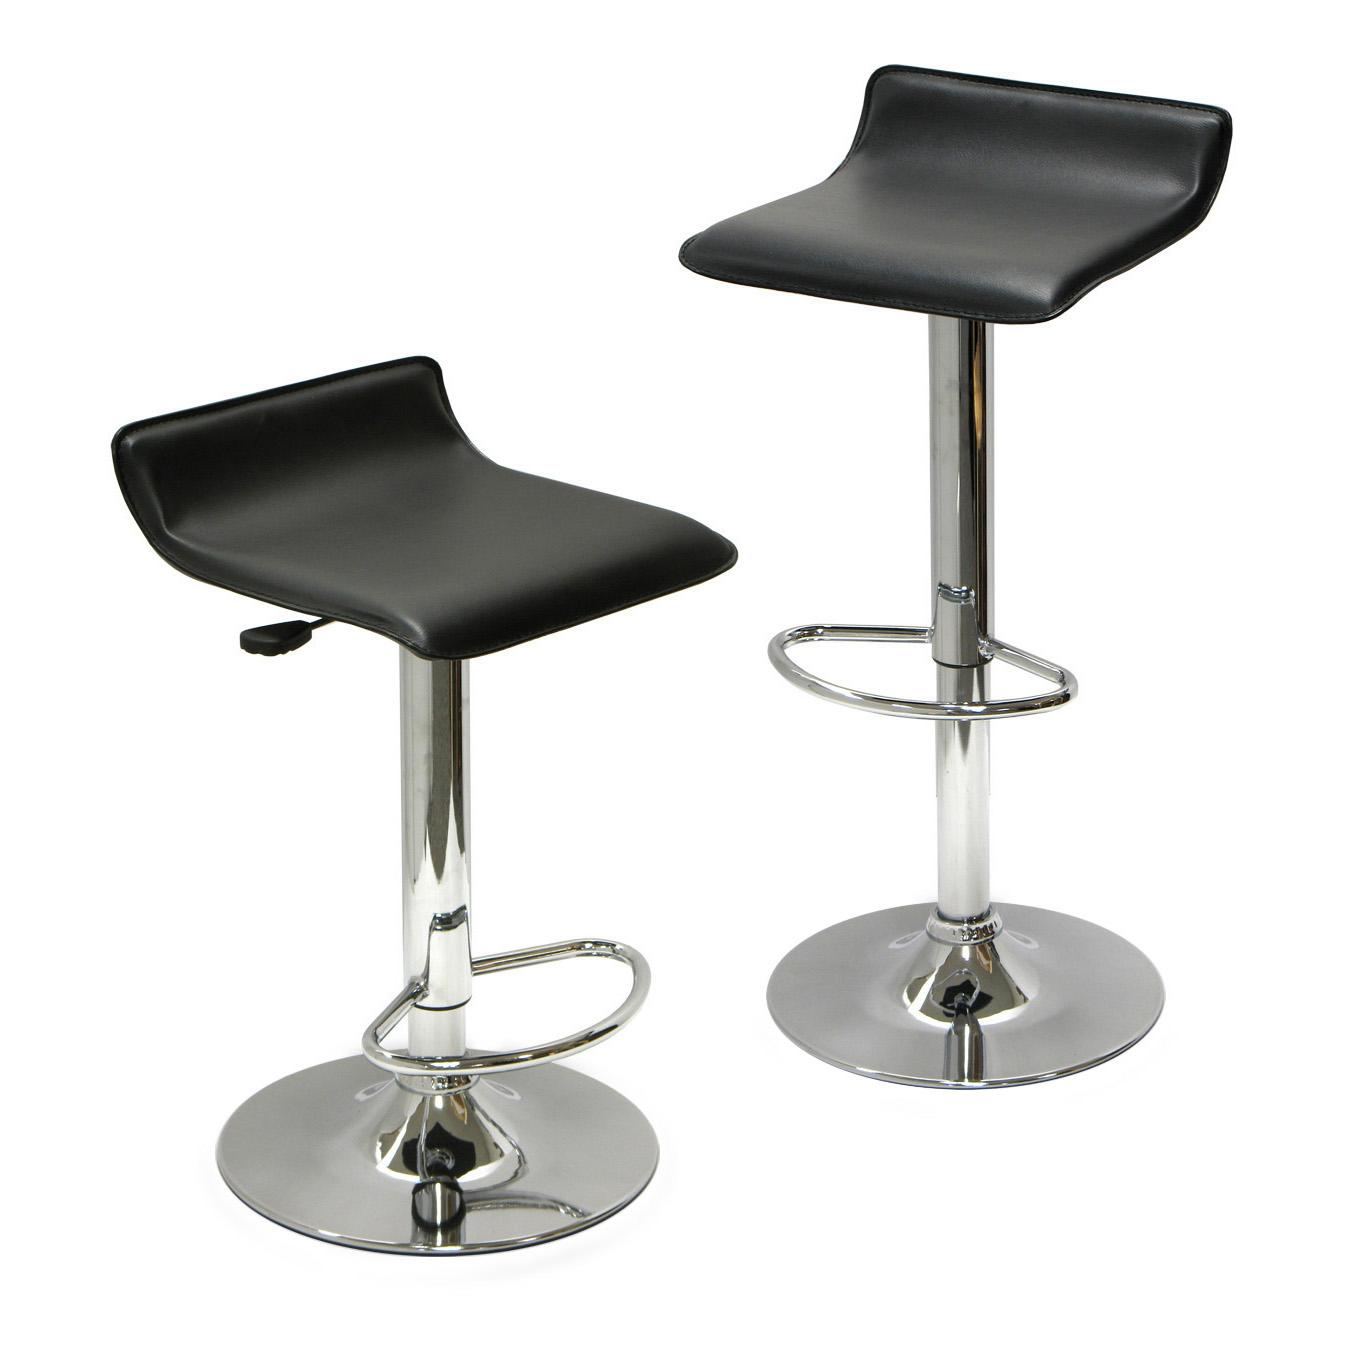 View larger  sc 1 st  Amazon.com & Amazon.com: Winsome Wood Air Lift Adjustable Stools Set of 2 ... islam-shia.org